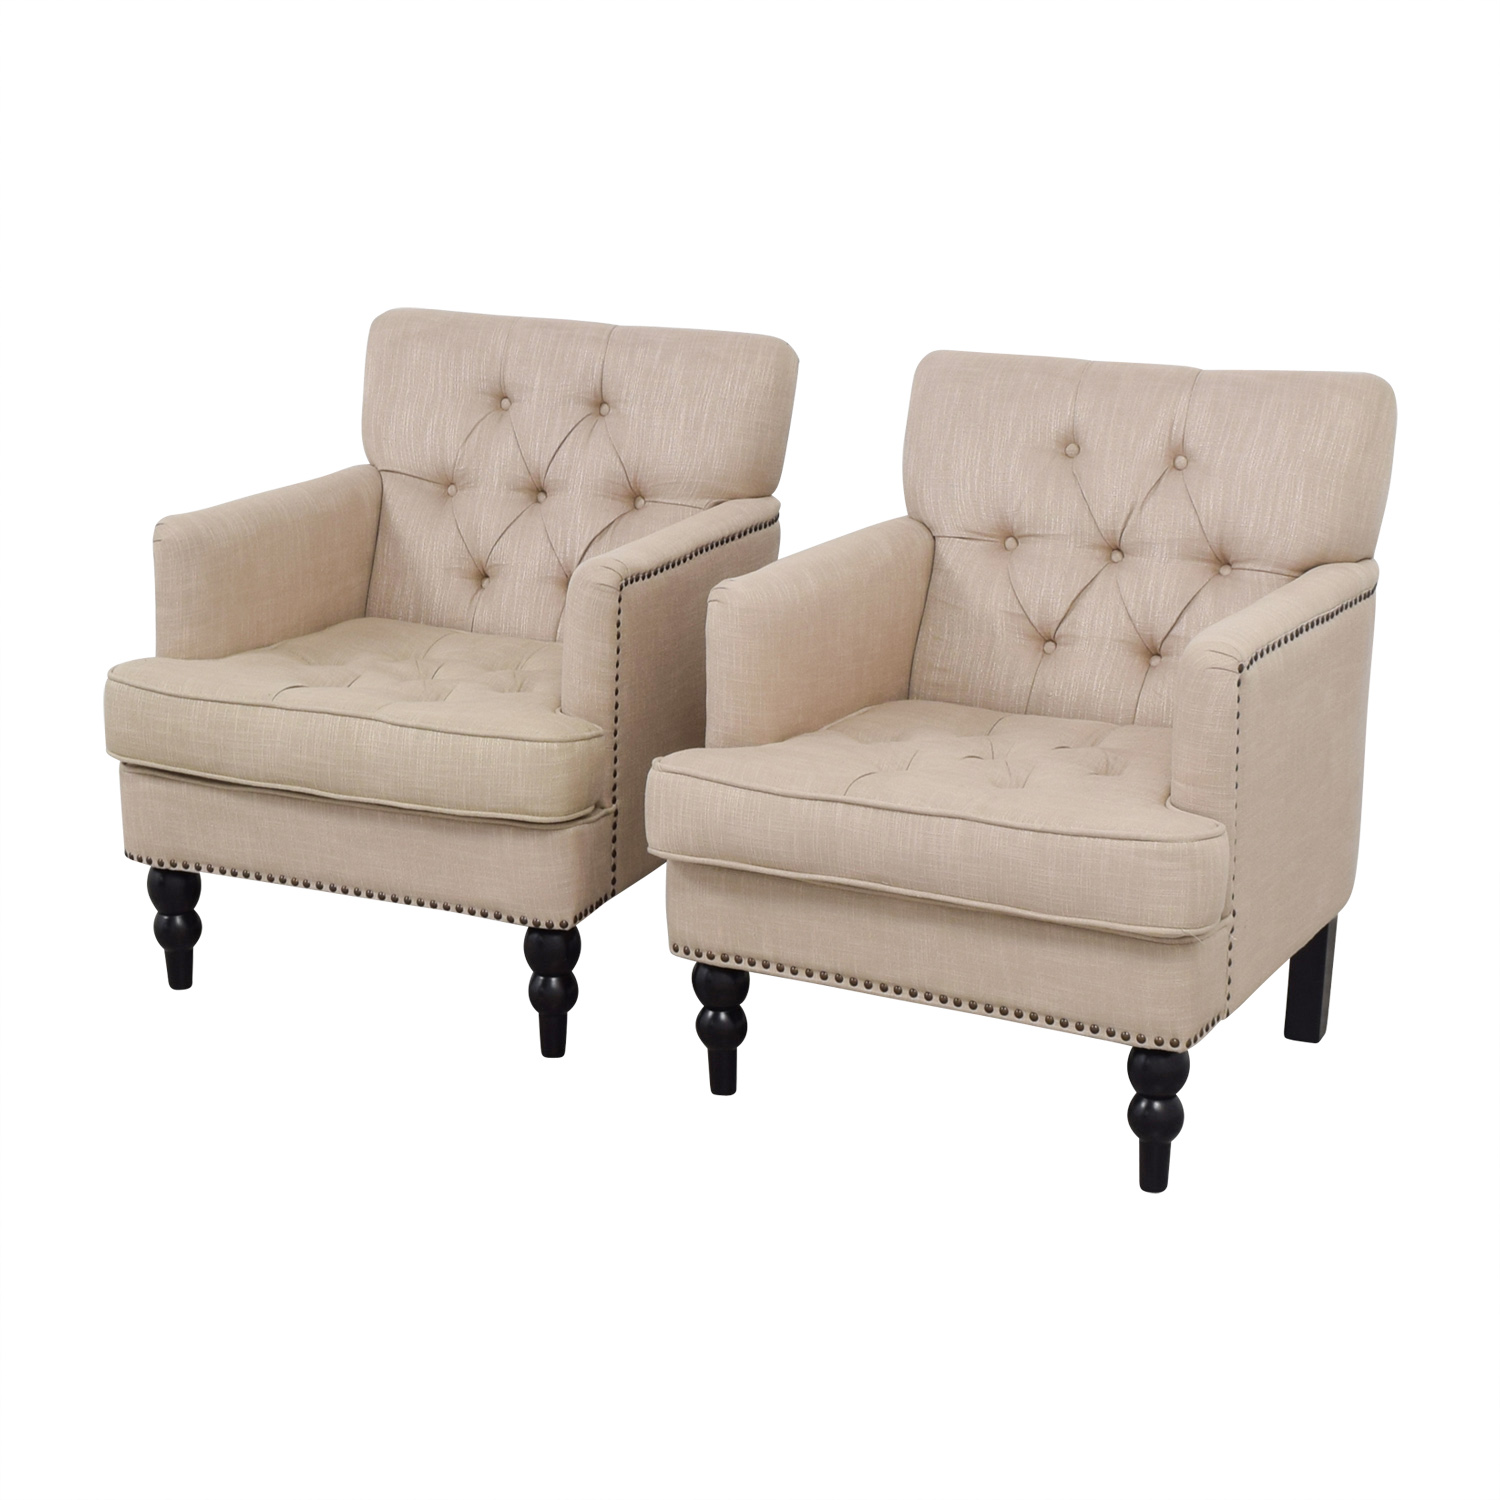 Great Deal Furniture Great Deal Furniture Medford Chair second hand